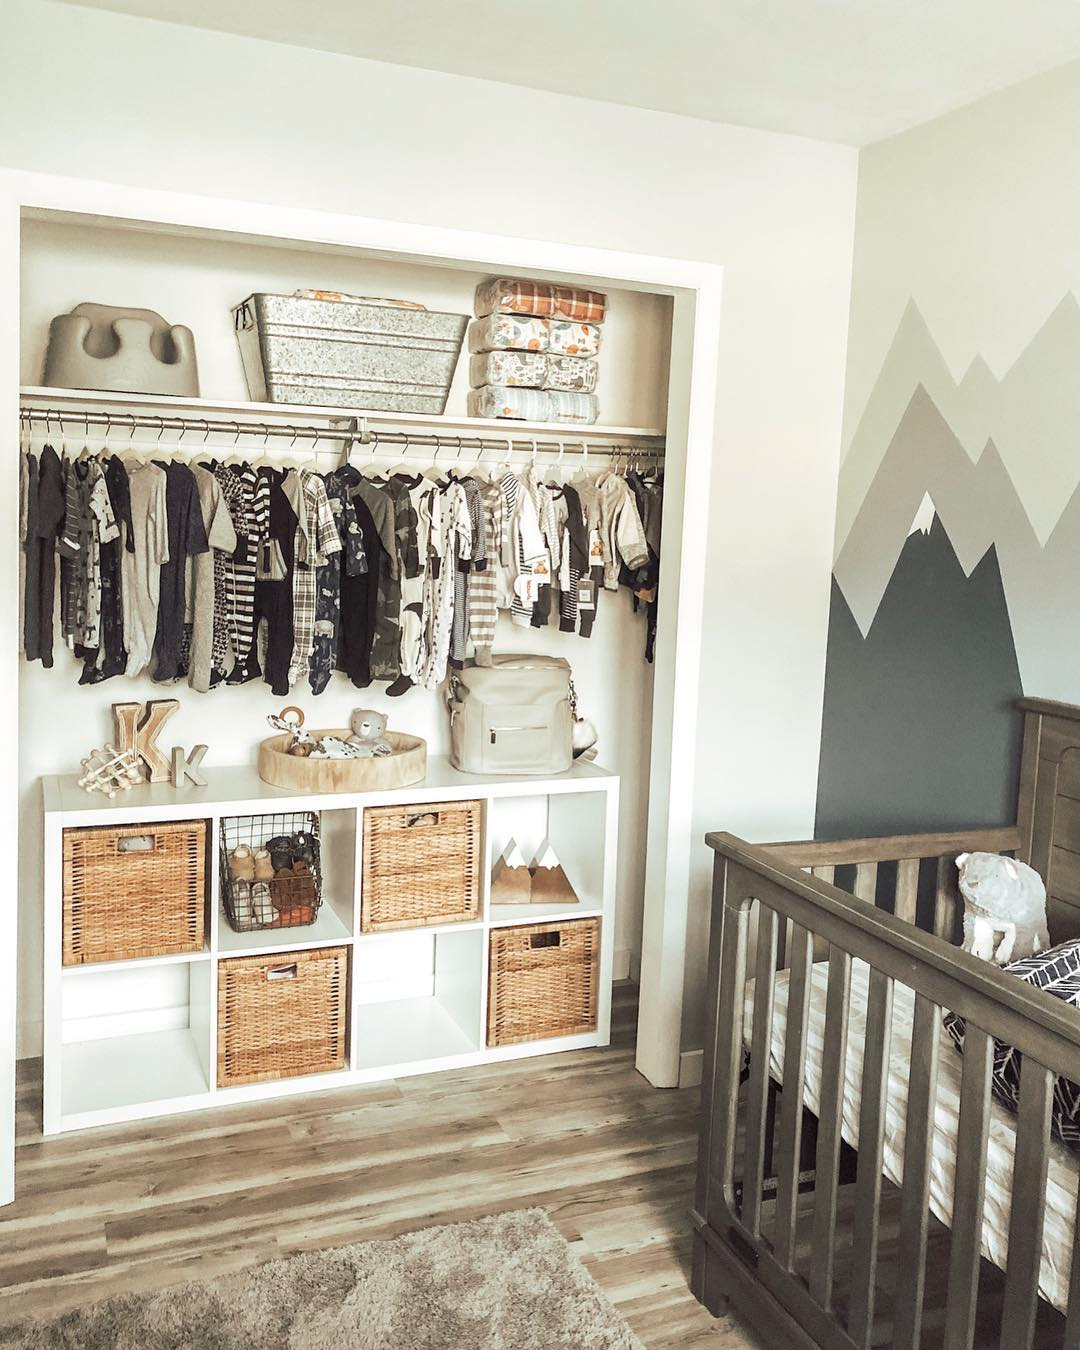 Remove Nursery Closet Doors for More Space